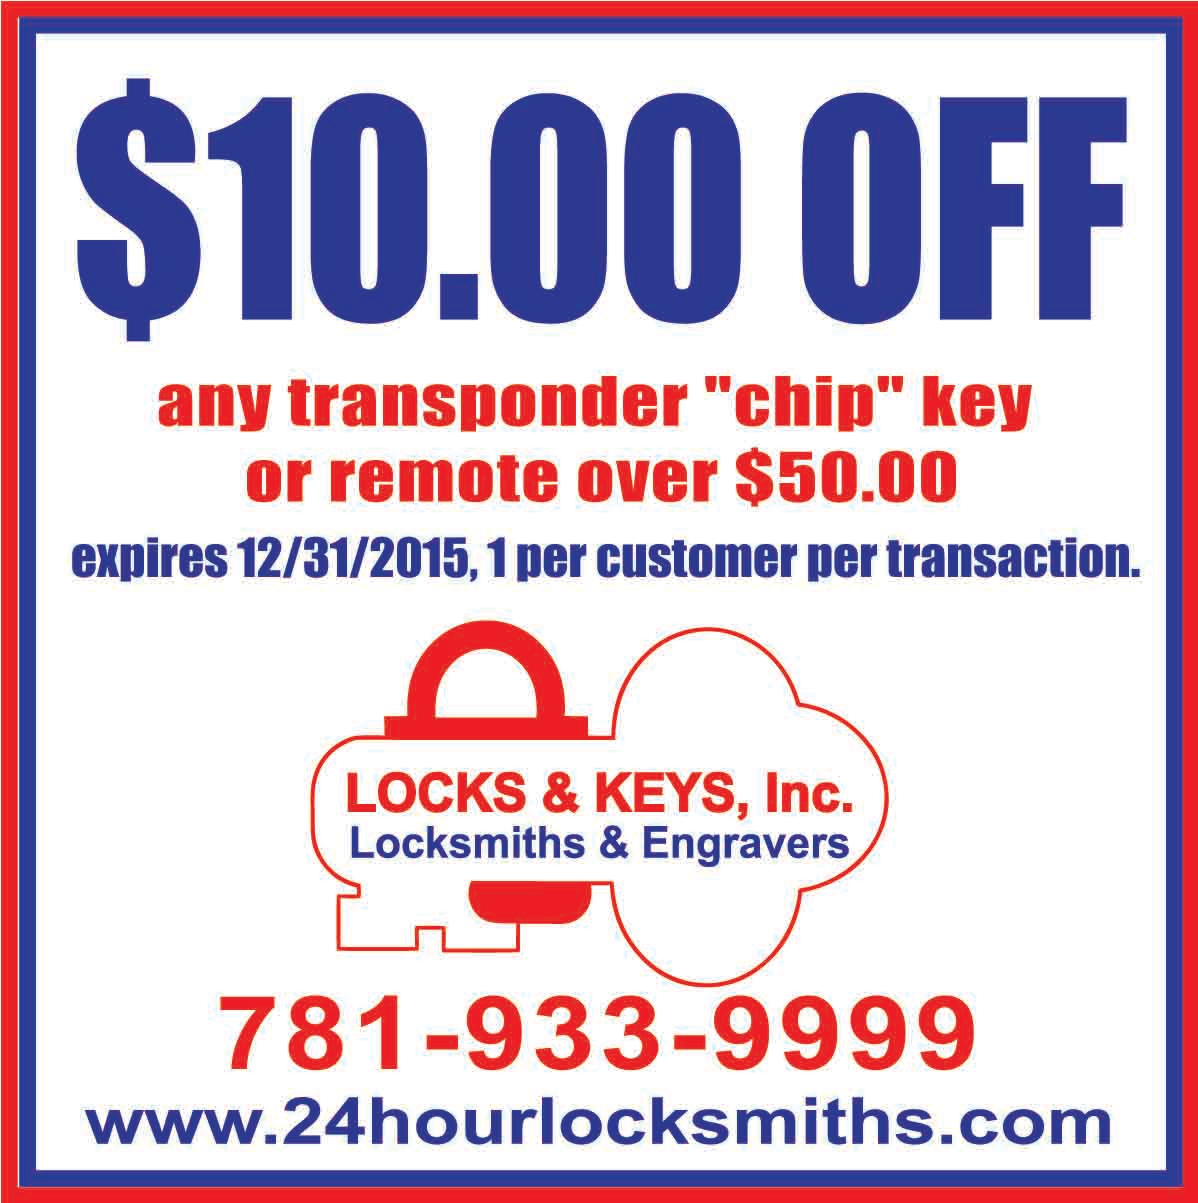 Locks & Keys, Inc. - 24 hour Locksmiths image 6